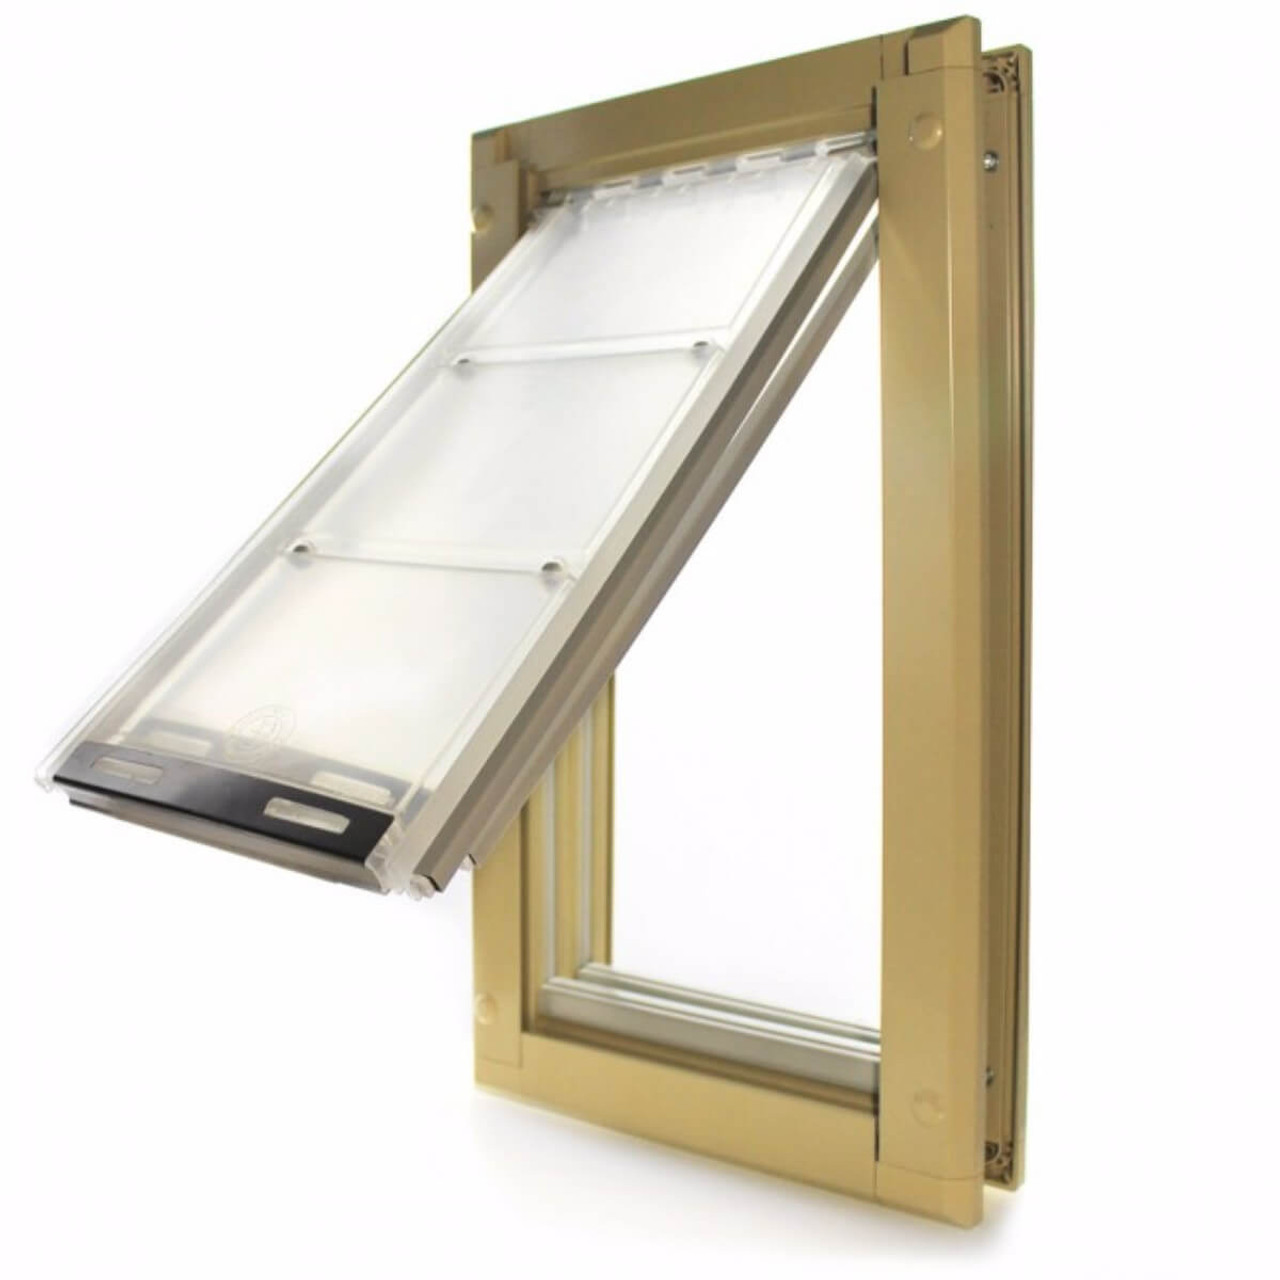 Endura Flap pet doors with double flaps are extremely weather tight and can be used in any climate even extreme hot and cold